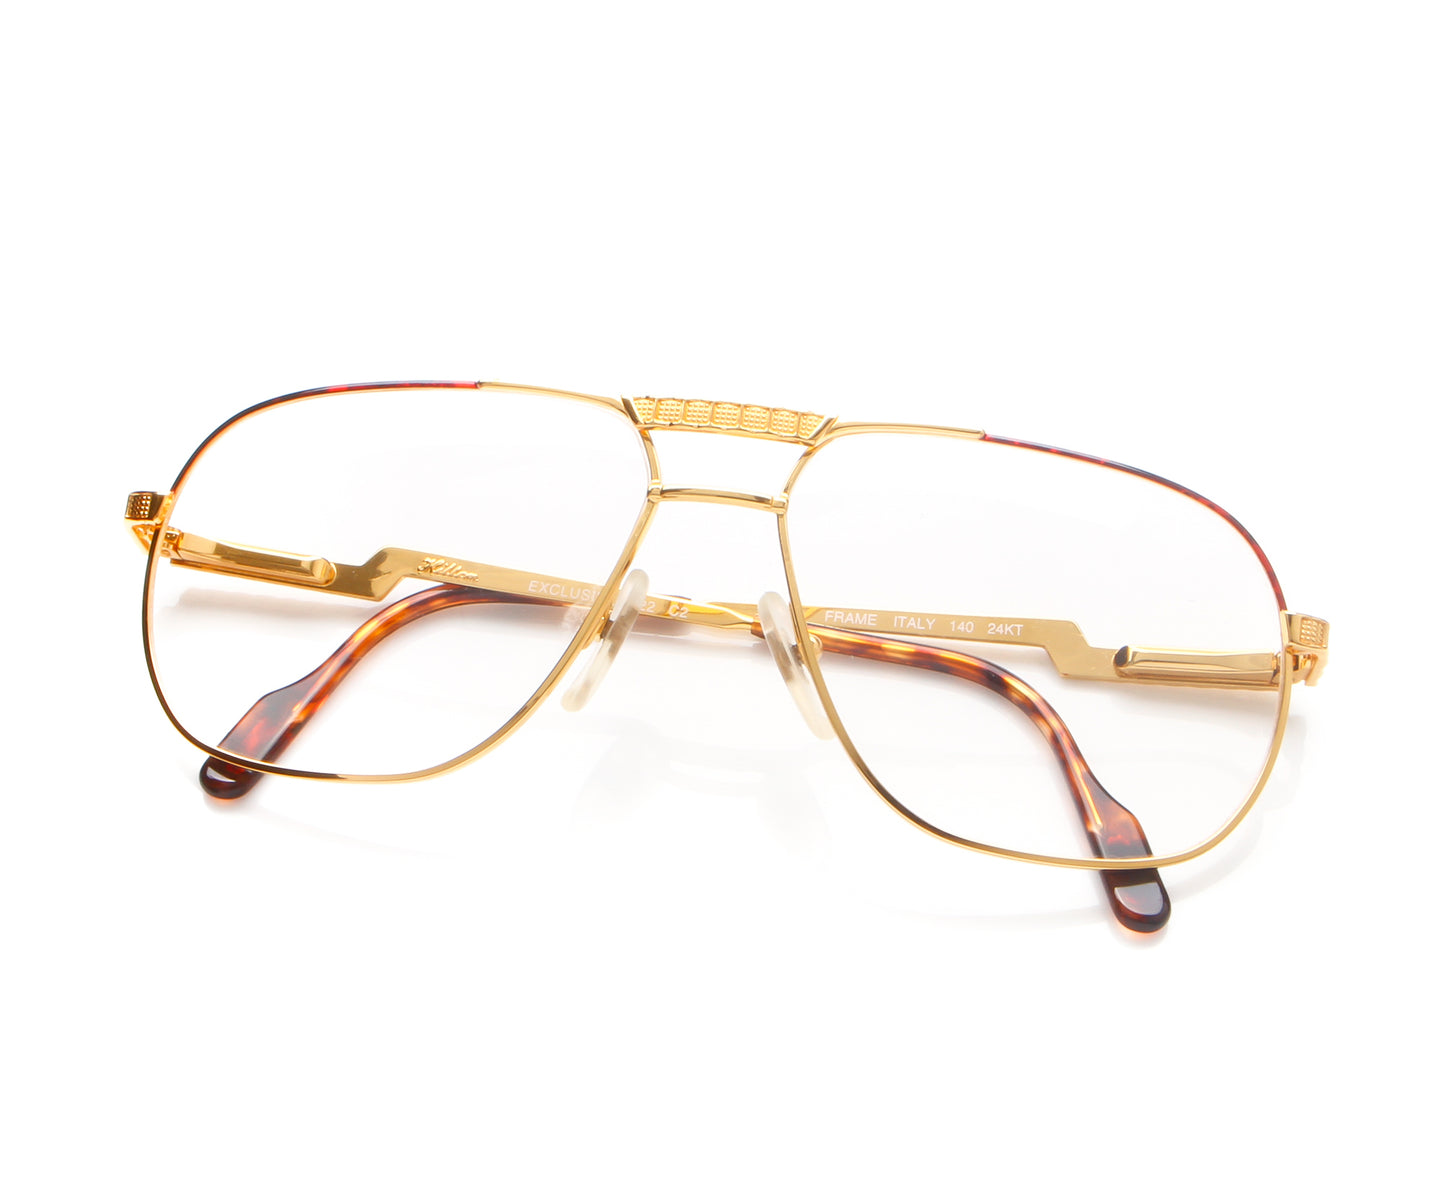 Vintage Hilton Exclusive 022 2 24KT Thumb, Hilton , glasses frames, eyeglasses online, eyeglass frames, mens glasses, womens glasses, buy glasses online, designer eyeglasses, vintage sunglasses, retro sunglasses, vintage glasses, sunglass, eyeglass, glasses, lens, vintage frames company, vf